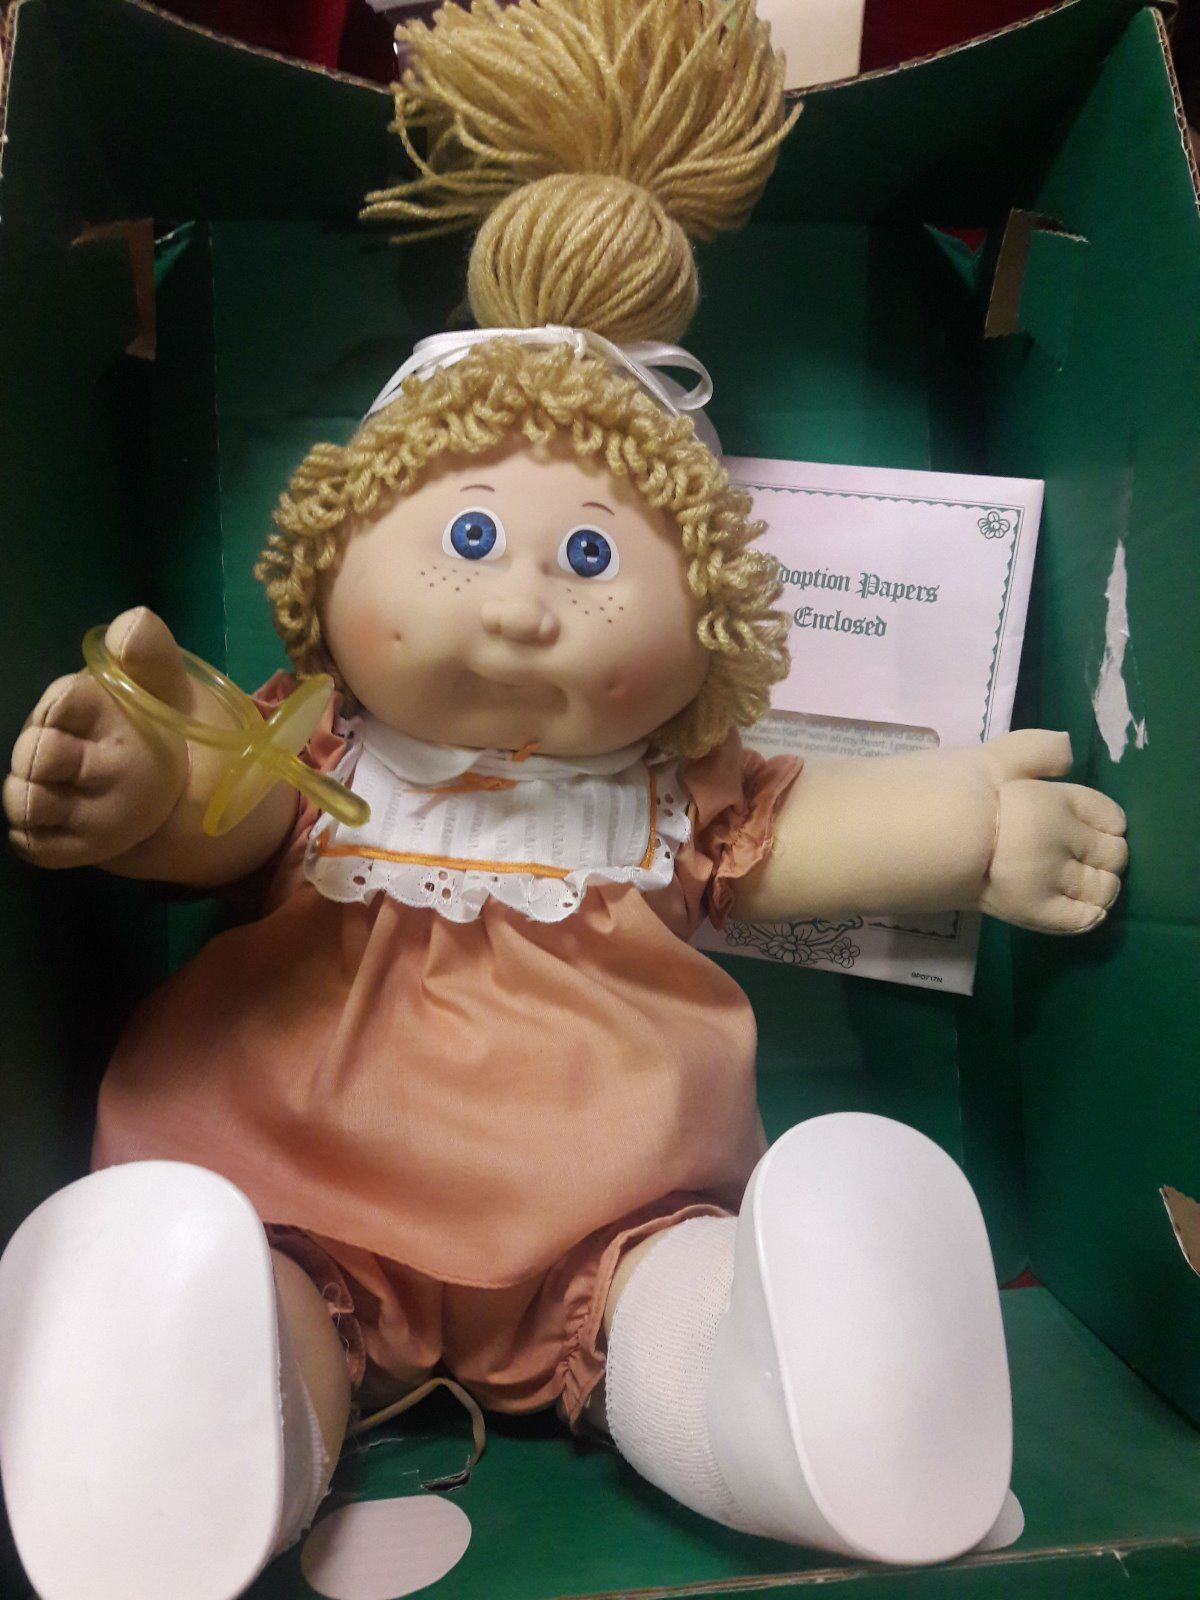 Vintage 1983 Cabbage Patch Kids Blonde Girl Doll With Pacifier In Box Coleco Cabbage Patch Kids Vintage Cabbage Patch Dolls Cabbage Patch Dolls